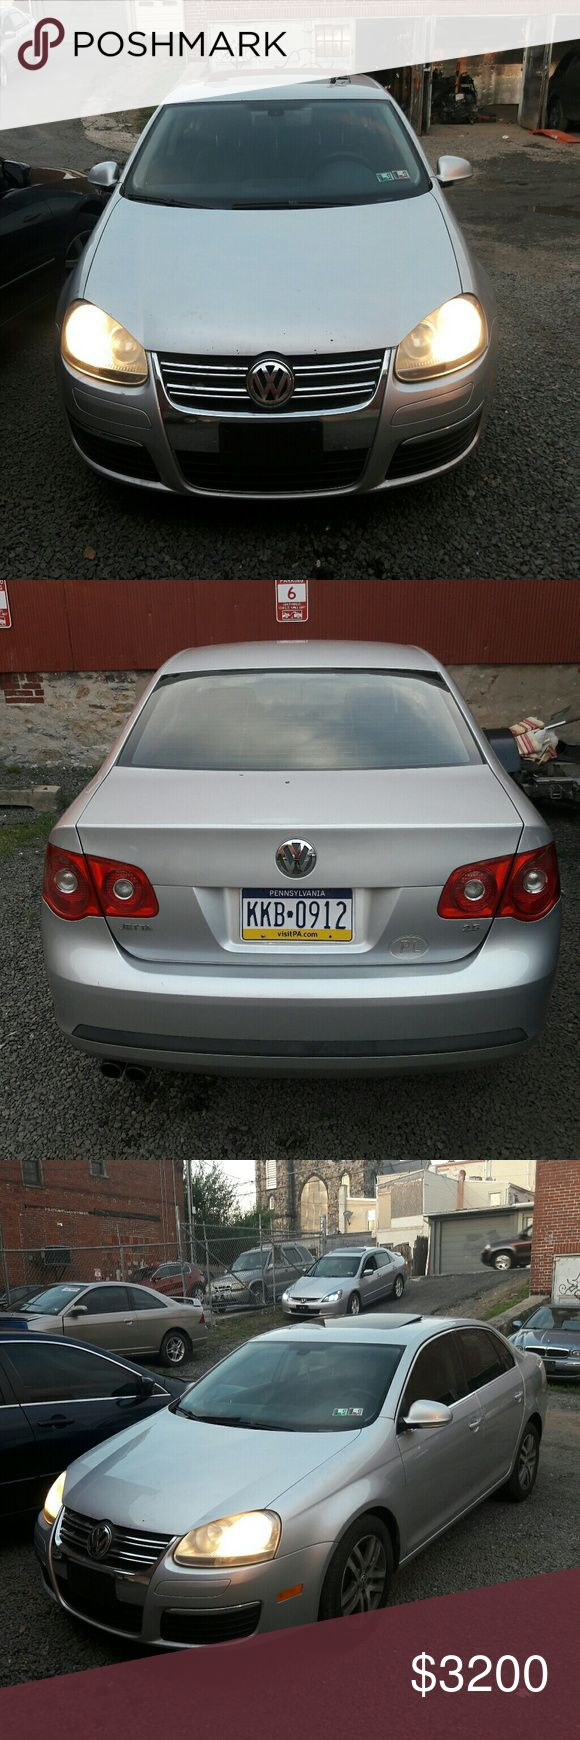 Volkswagen Jetta 2005 166 thousand miles Good condition everything works Other